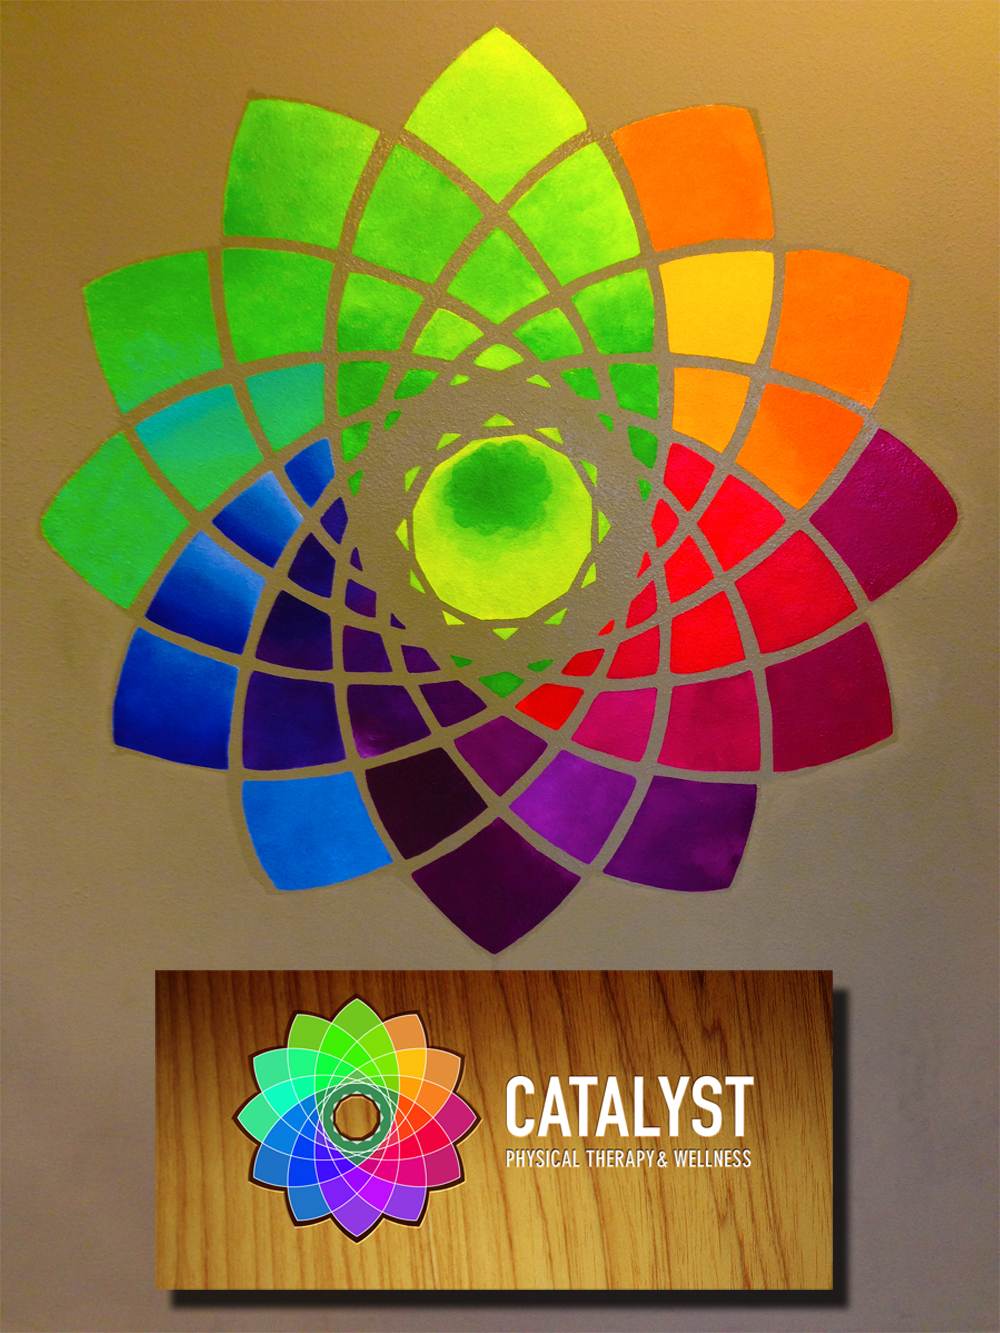 Catalyst, fo' sho'